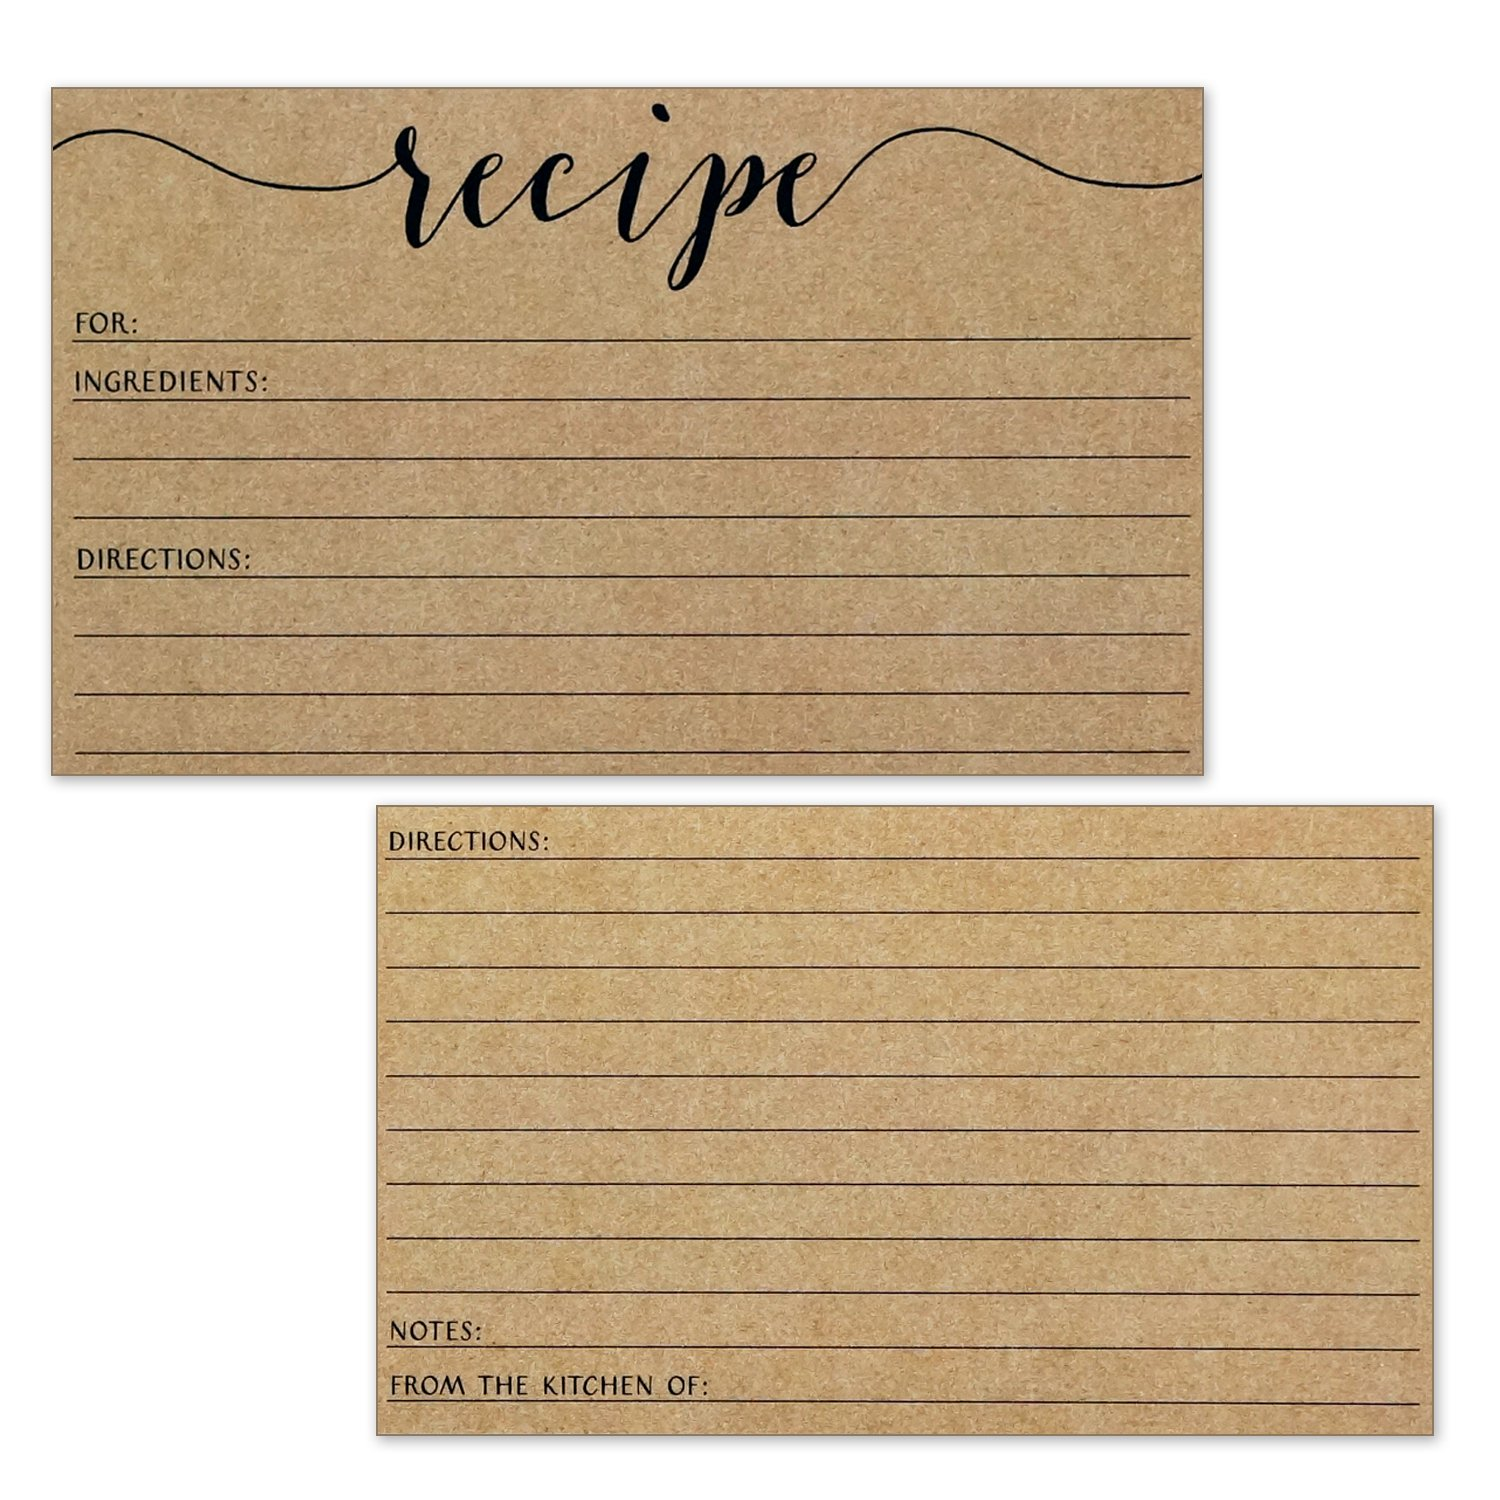 Recipe Cards - Size 3x5 - Small Kraft Brown Lined Kitchen Note Card for Recipe Box - Set of 50 Wedding Advice Cards 3x5 Recipe